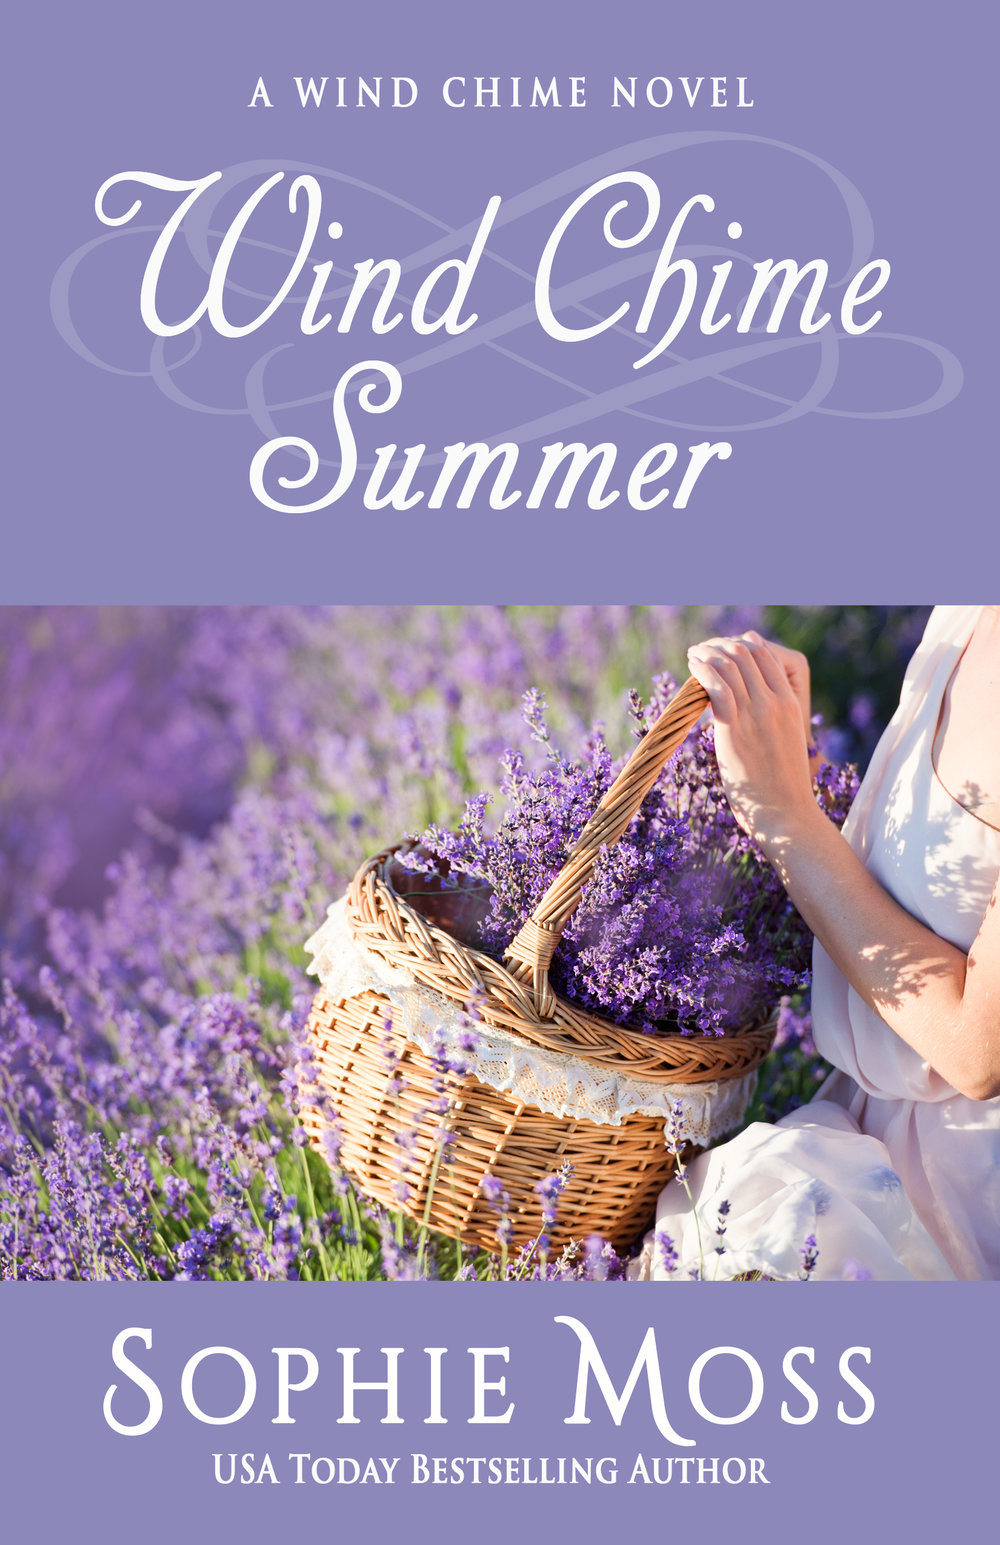 Wind Chime Summer ebook cover Sept 22 2017 VELLUM.jpg